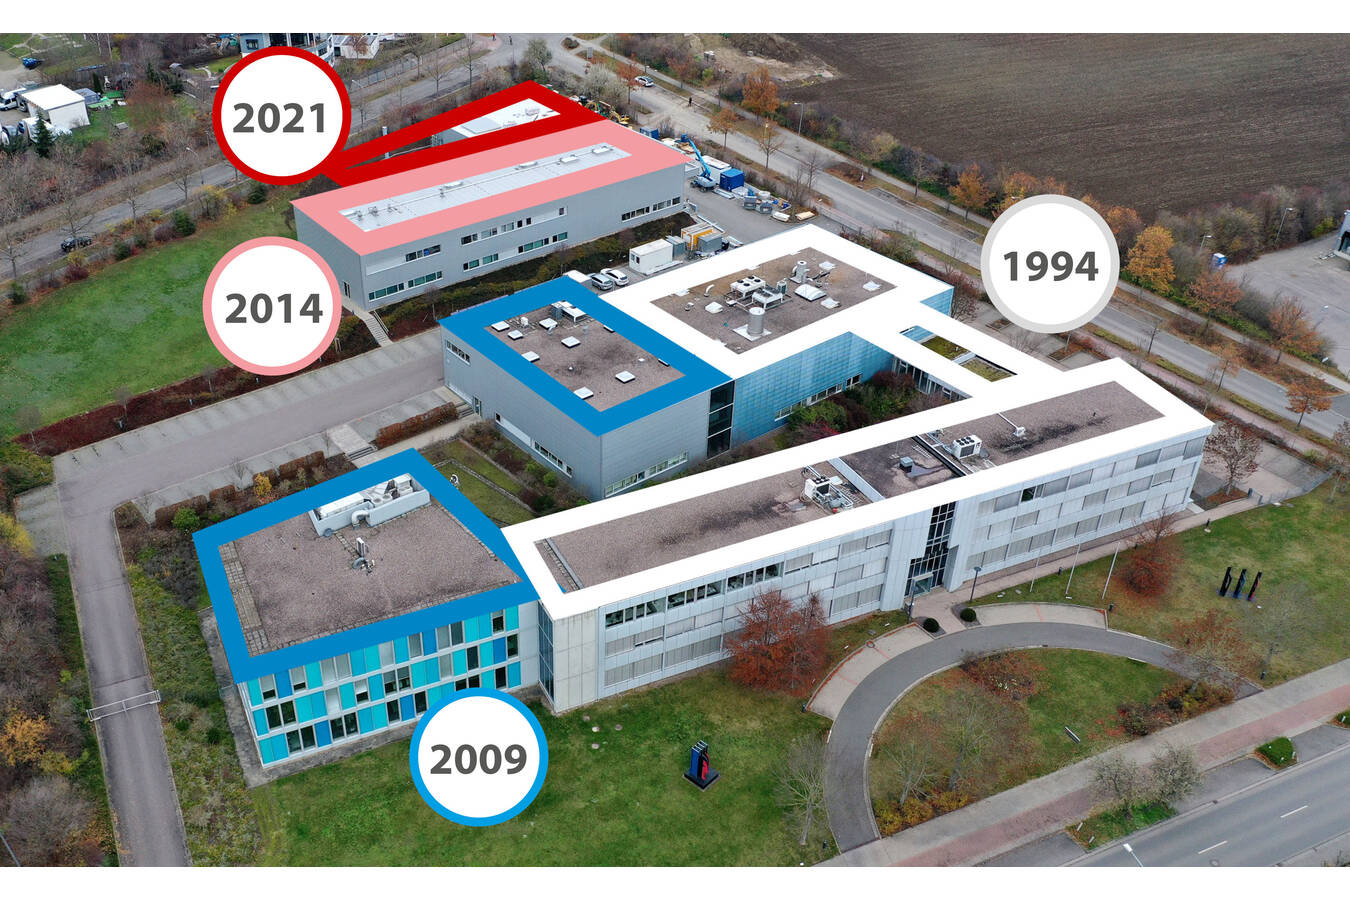 Glatt Ingenieurtechnik celebrates continued business success  Plant engineering expert Glatt Ingenieurtechnik marks its 30th anniversary with an investment in the future of its headquarters